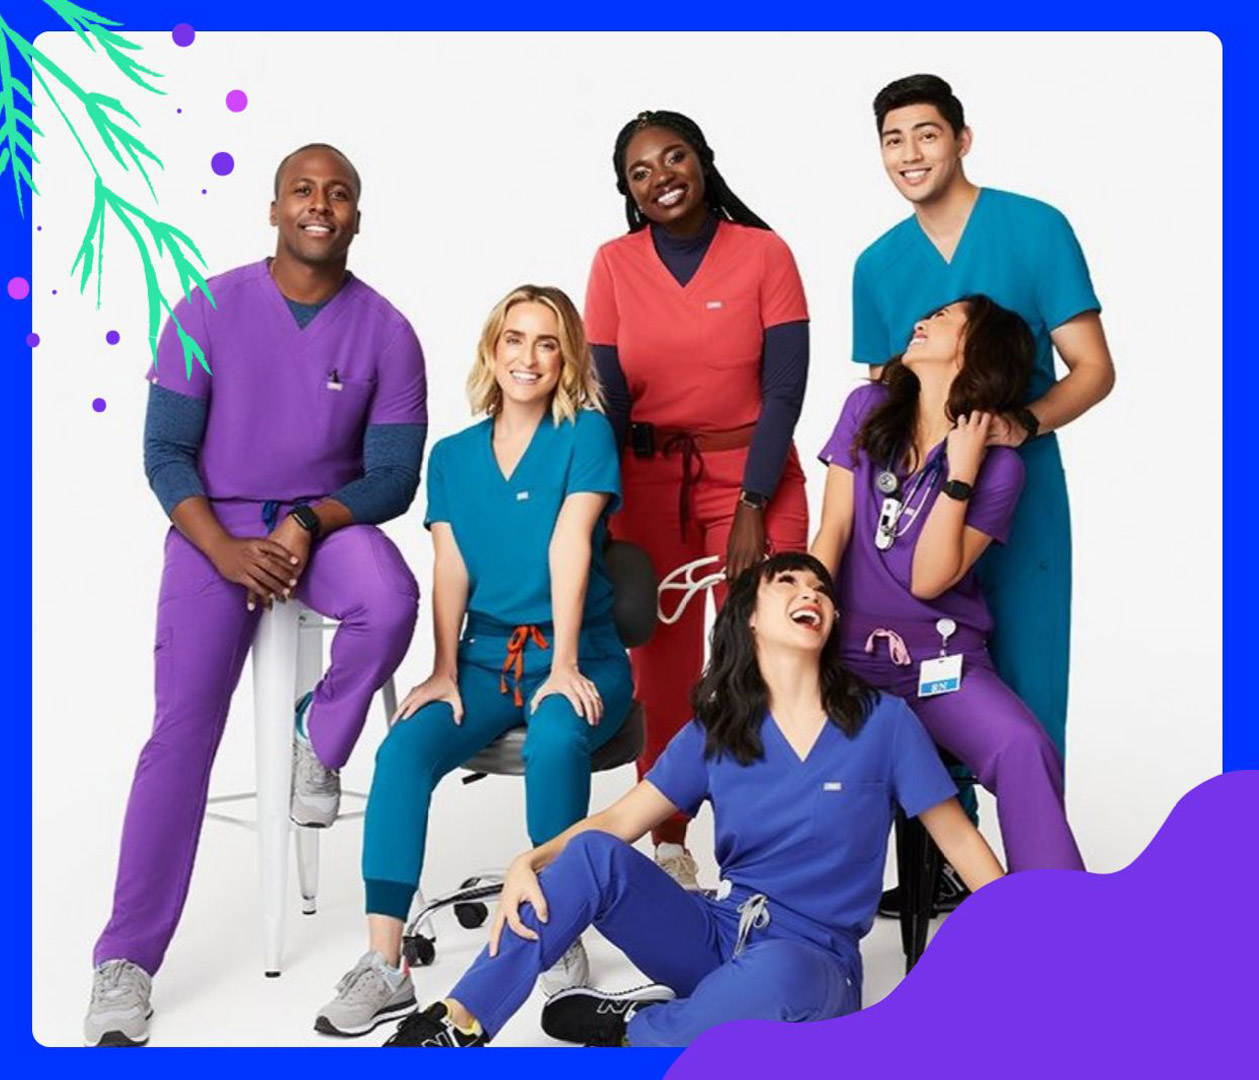 Wear Figs Scrubs for Modern Healthcare Workers